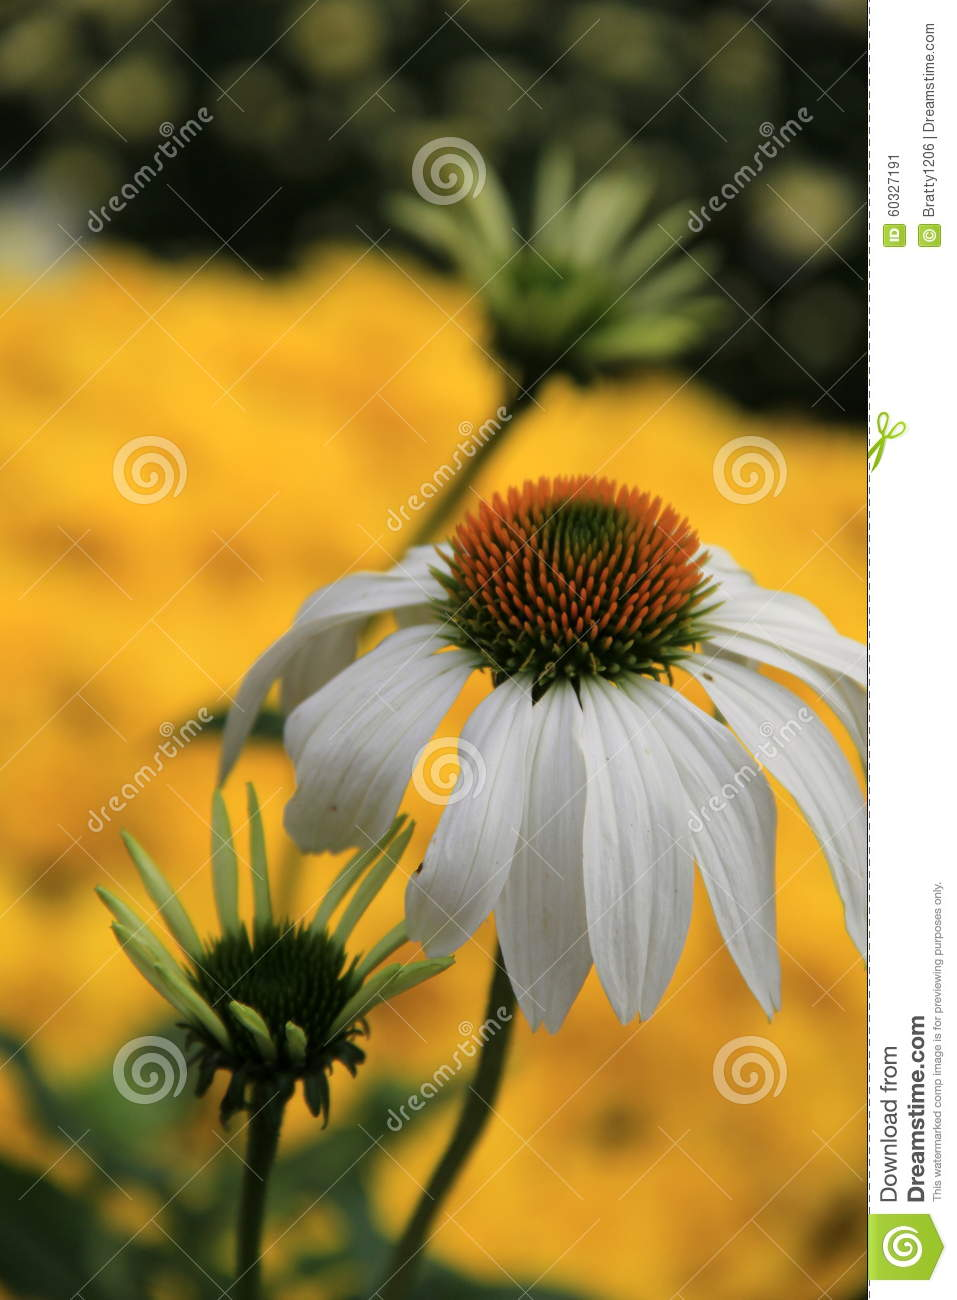 Pretty fall flowers in landscaped gardens stock image image of pretty fall flowers in landscaped gardens mightylinksfo